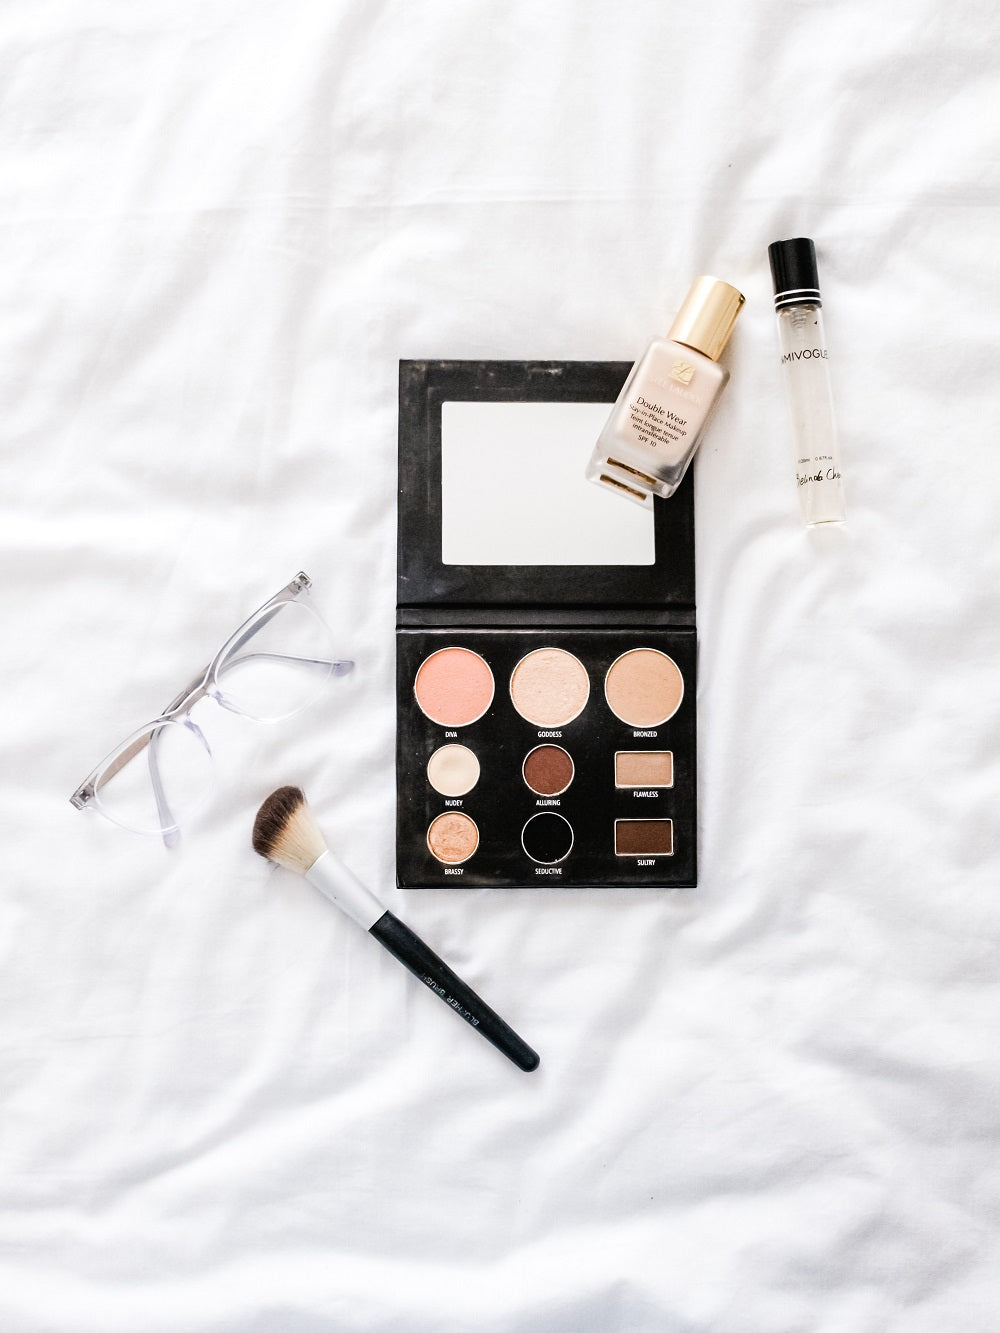 How to Save Money on Makeup – 10 Tips You Need To Know